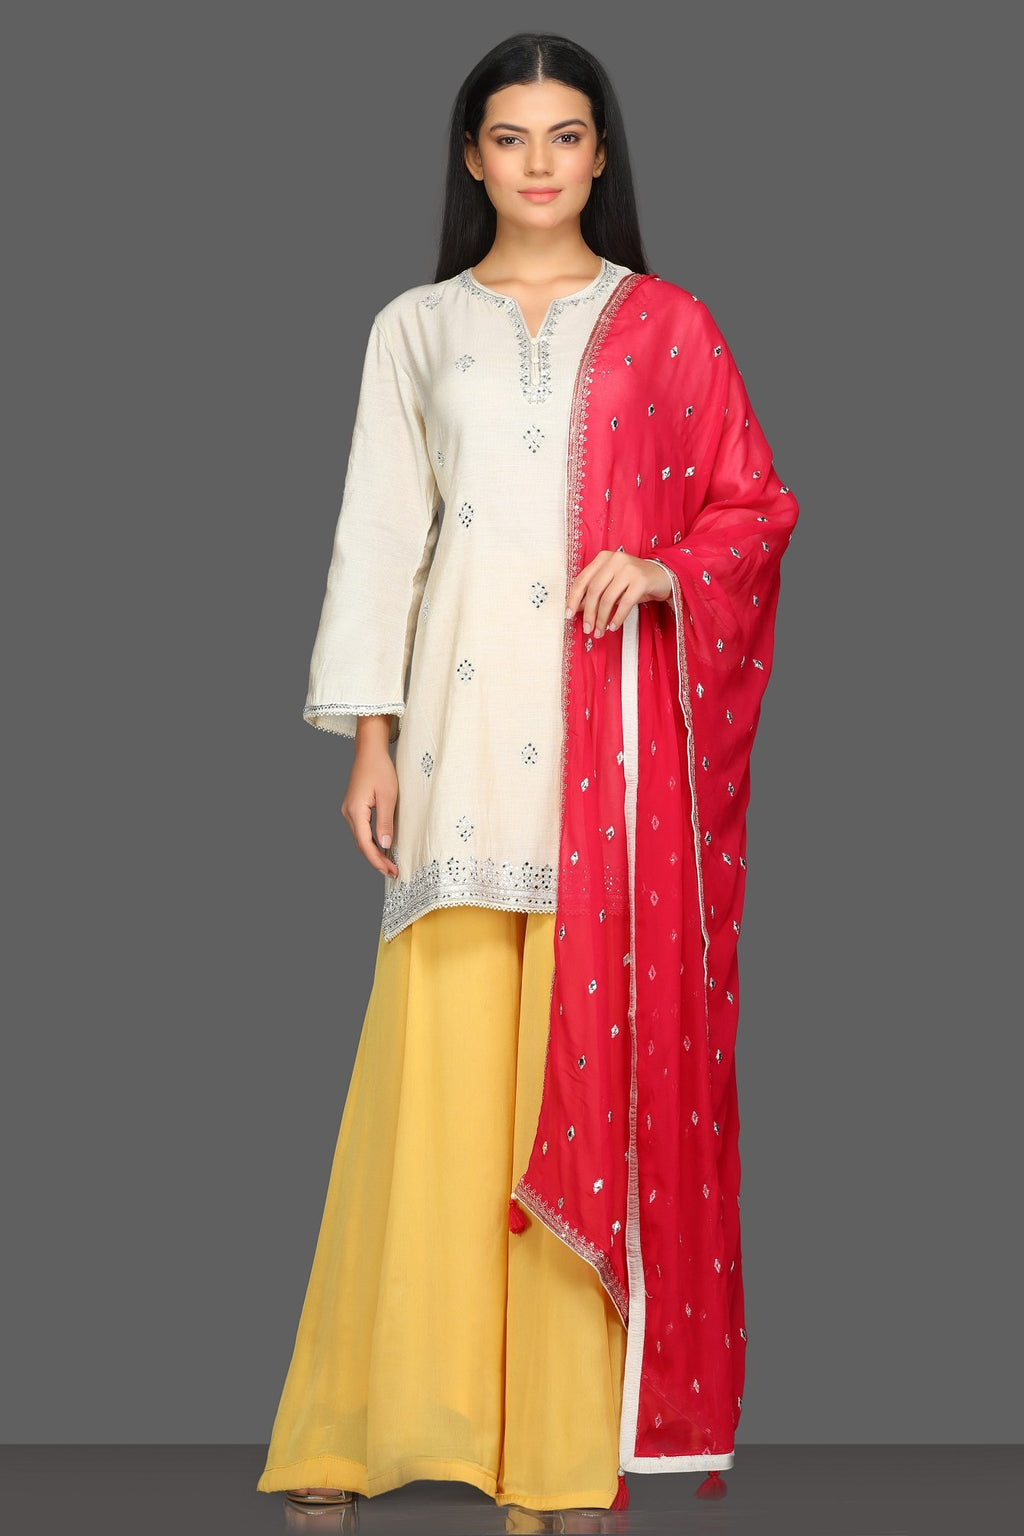 Buy lovely white and yellow embroidered sharara suit online in USA with red dupatta. Dazzle on weddings and special occasions with exquisite Indian designer dresses, sharara suits, Anarkali suits from Pure Elegance Indian fashion store in USA.-full view